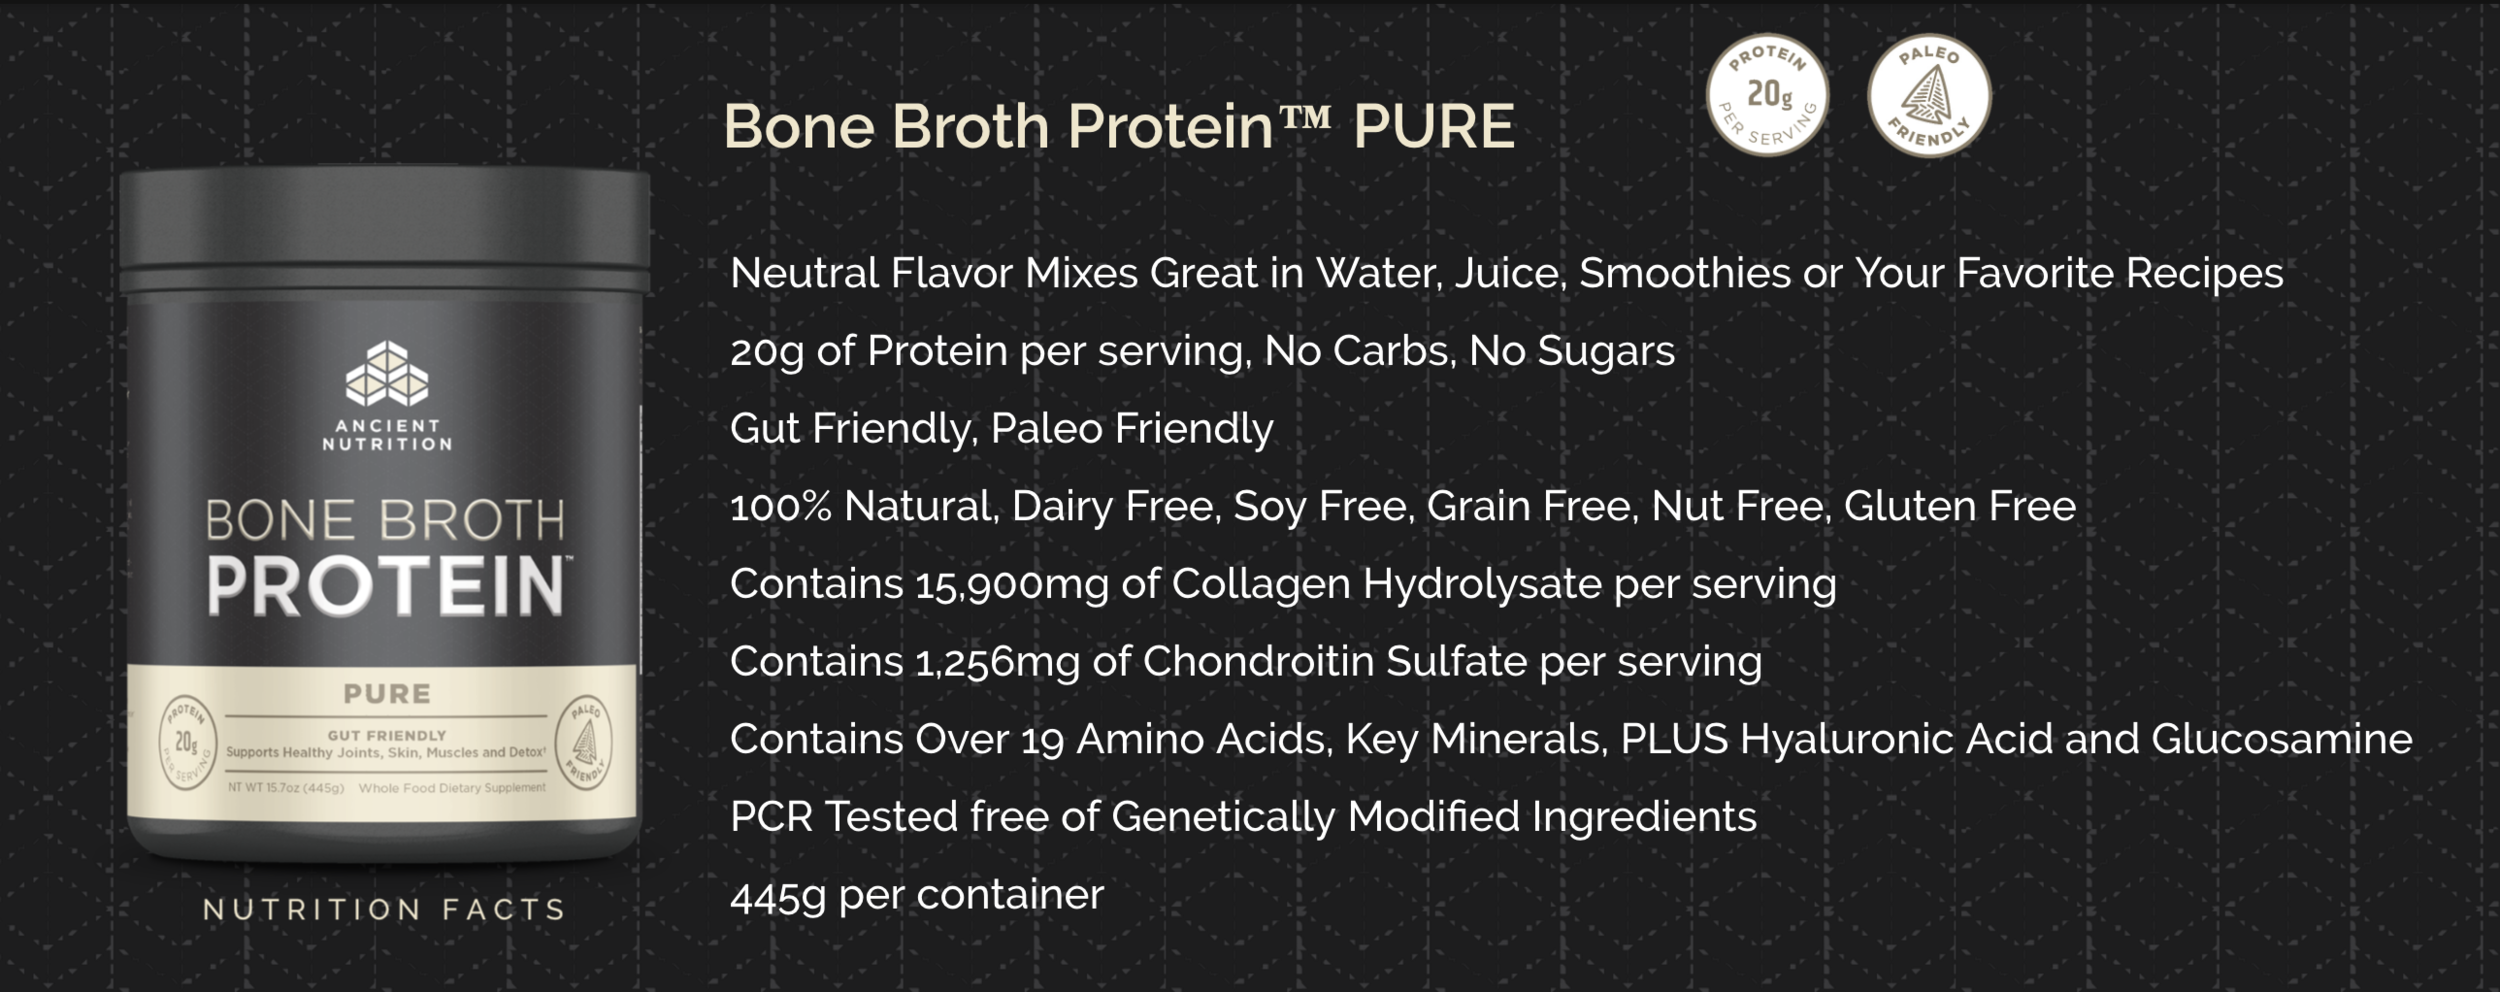 bone-broth-protein-nutritional-facts